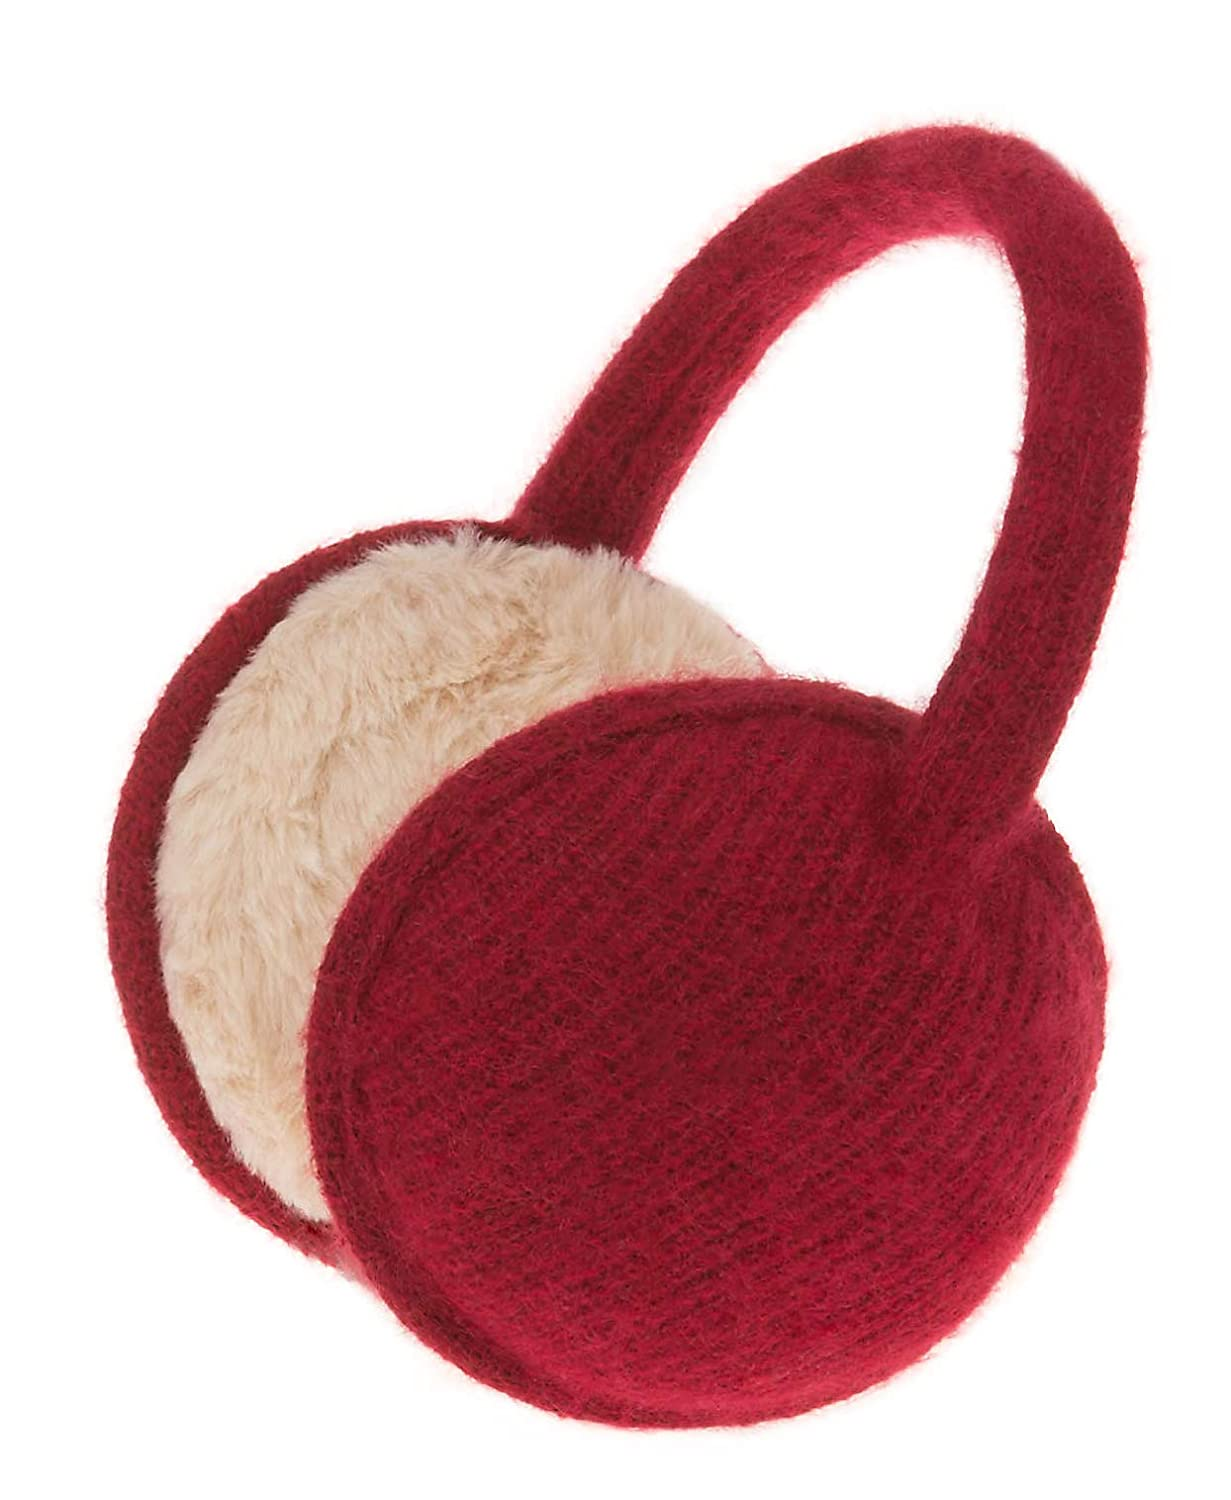 Knolee Unisex Classic Knit Earmuffs Foldable Ear Muffs Winter Accessory Outdoor EarMuffs